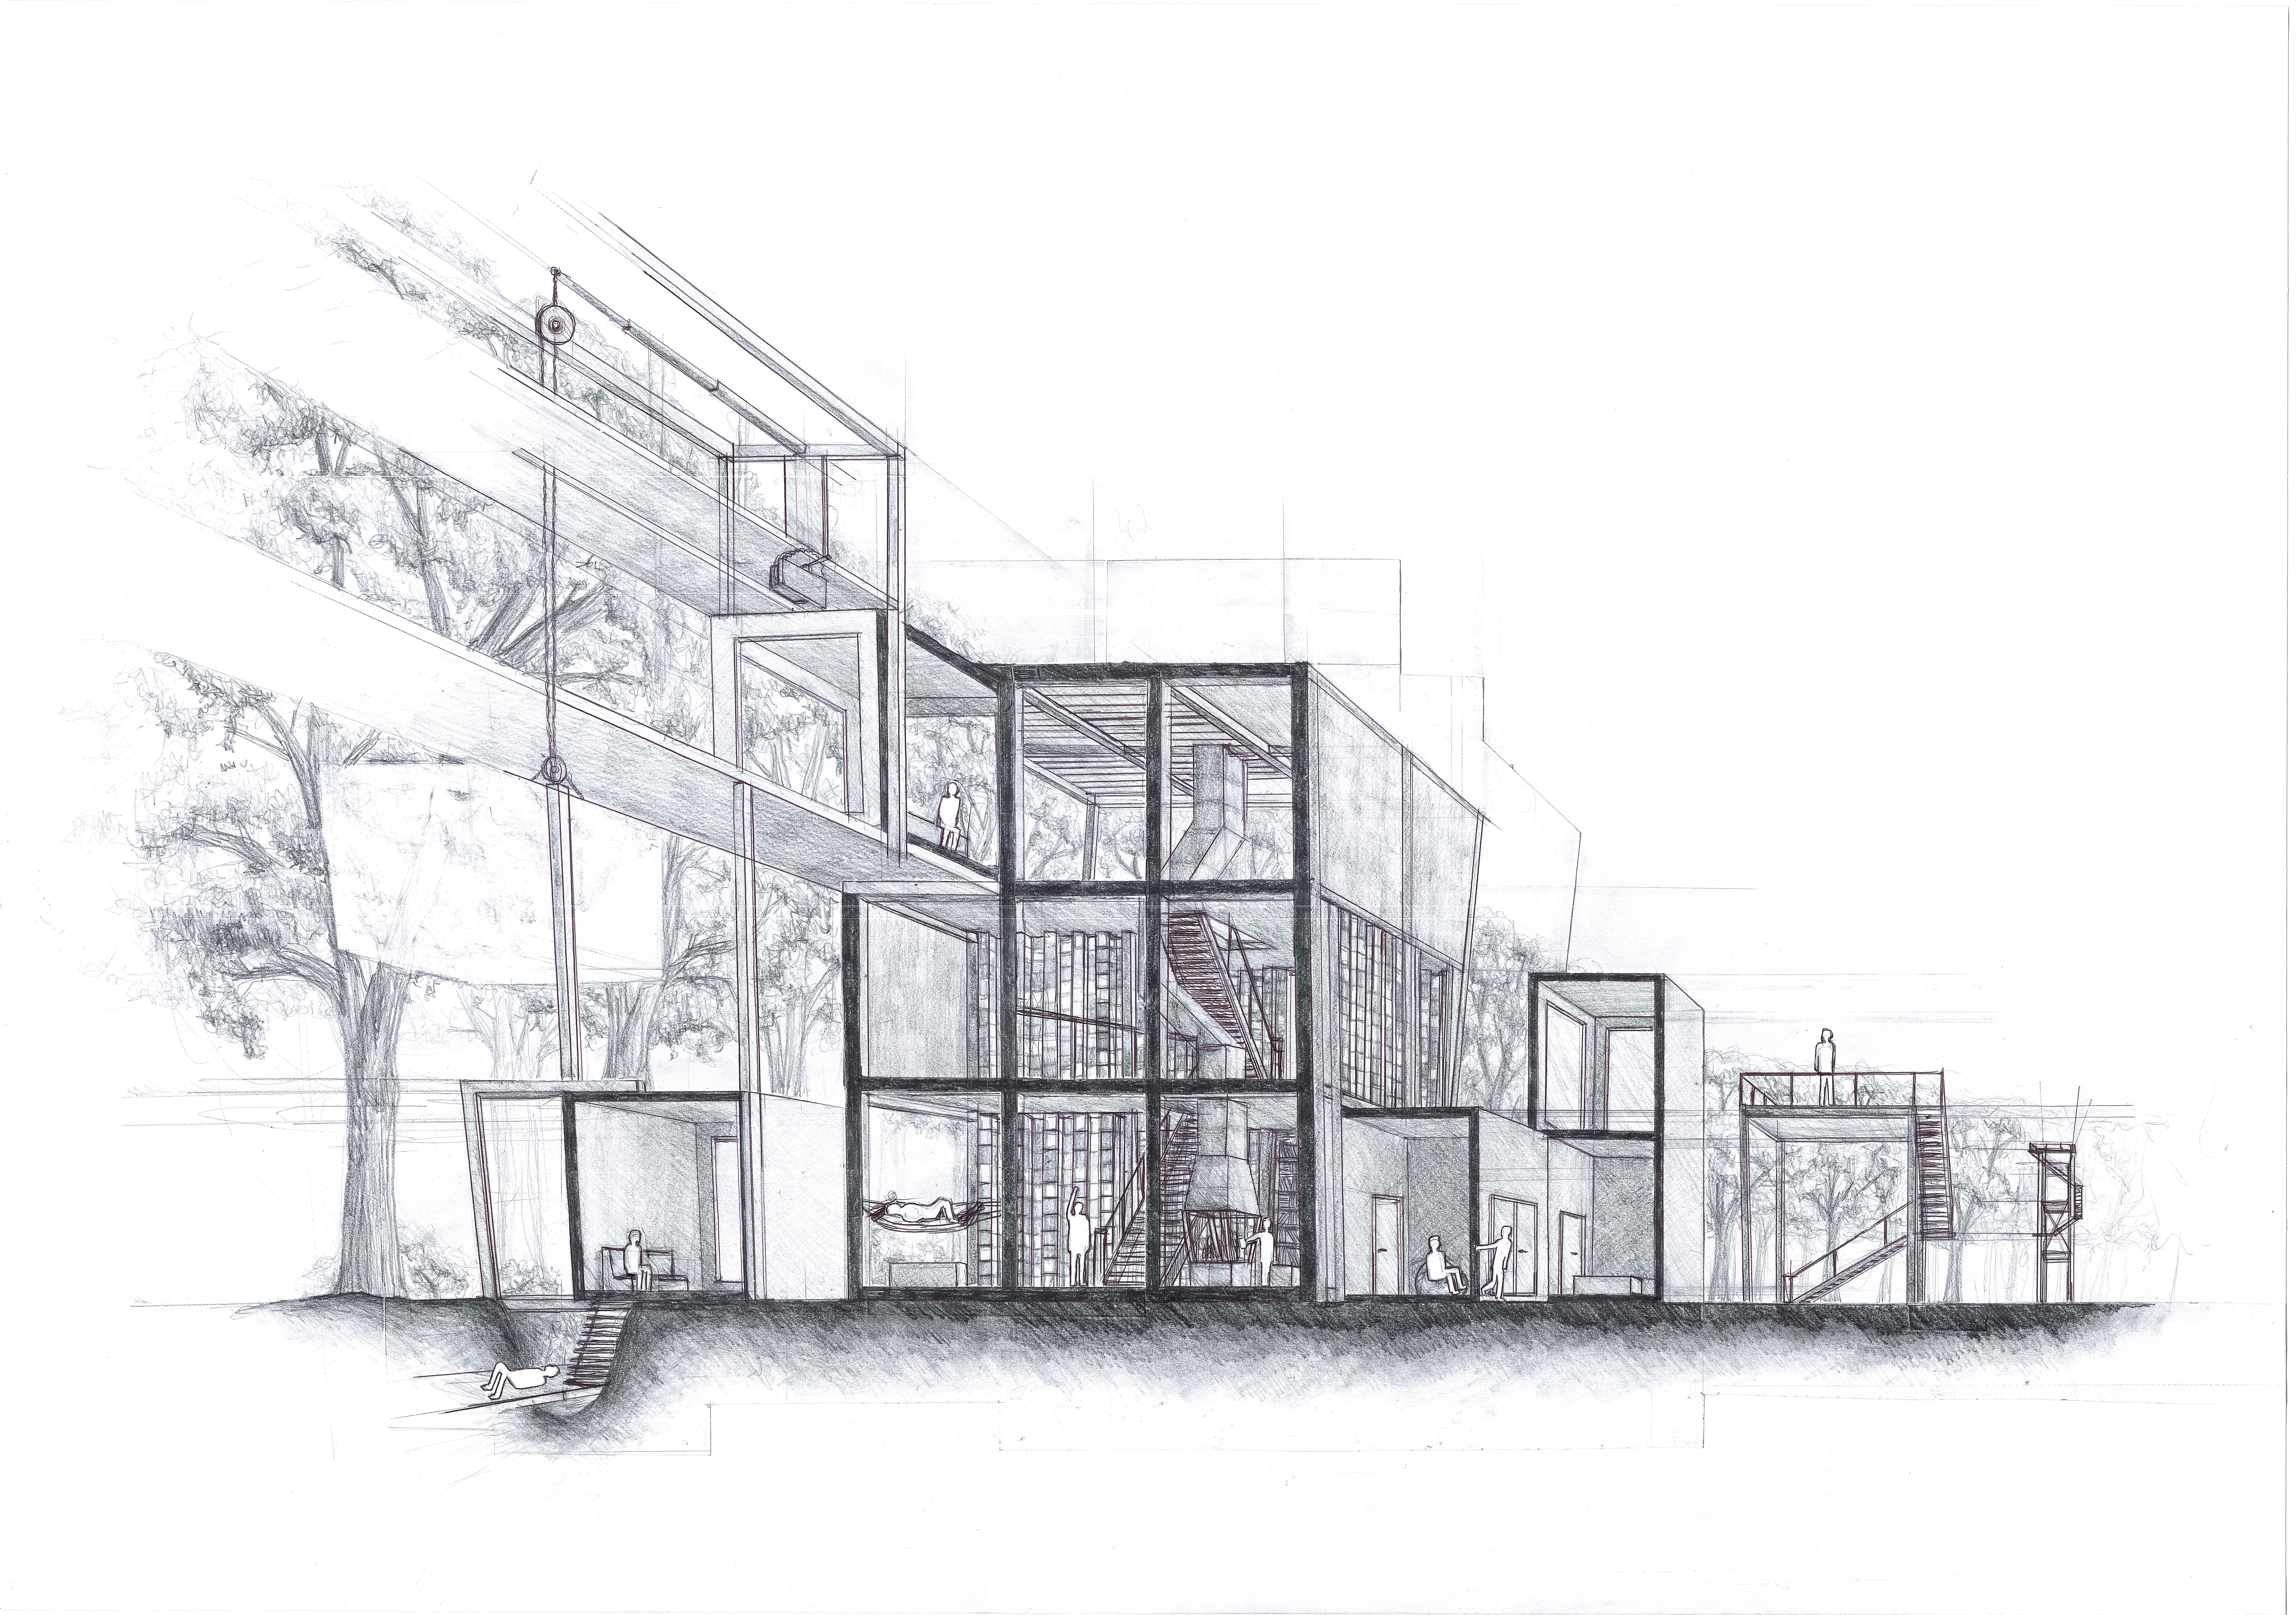 Architectural drawings drawing architecture a